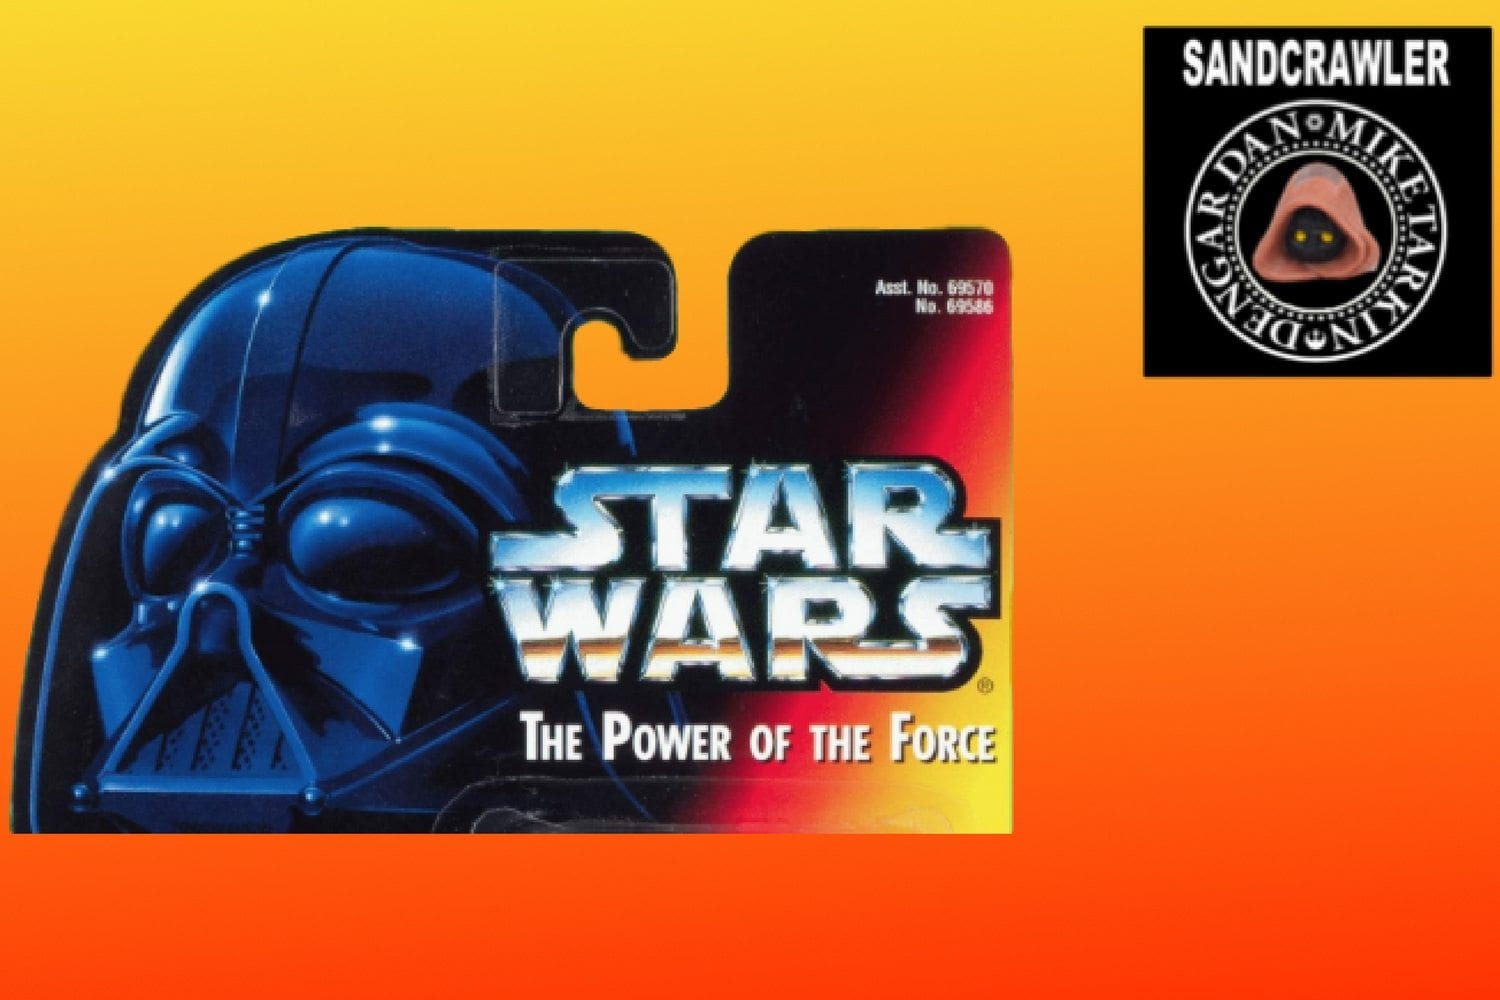 The Sandcrawler #48: The Greatest Action Figure Line Ever Created